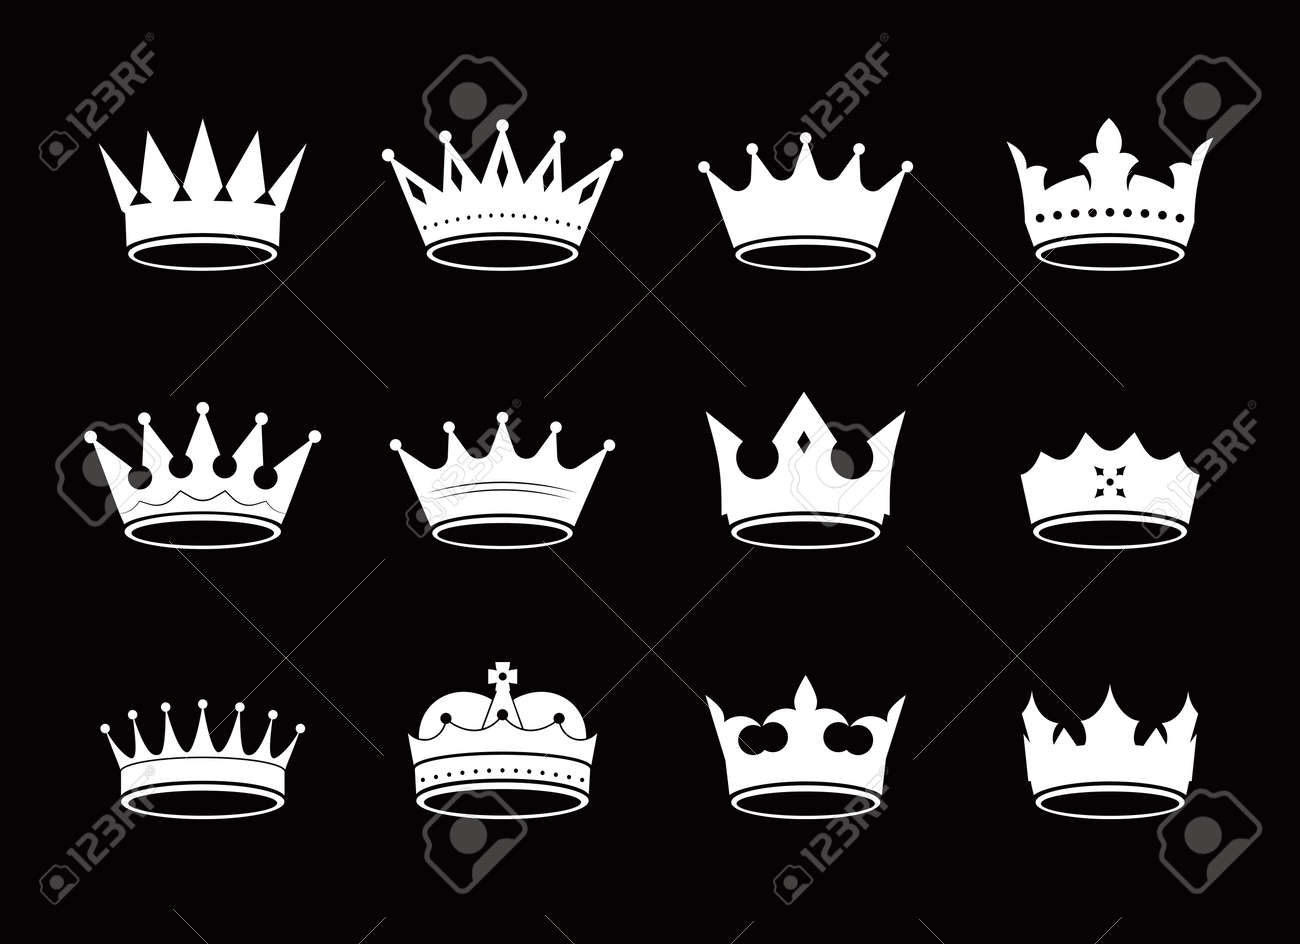 Set of vector king crowns and icon on black background. Vector Illustration. Emblem and royal symbols. - 131423204